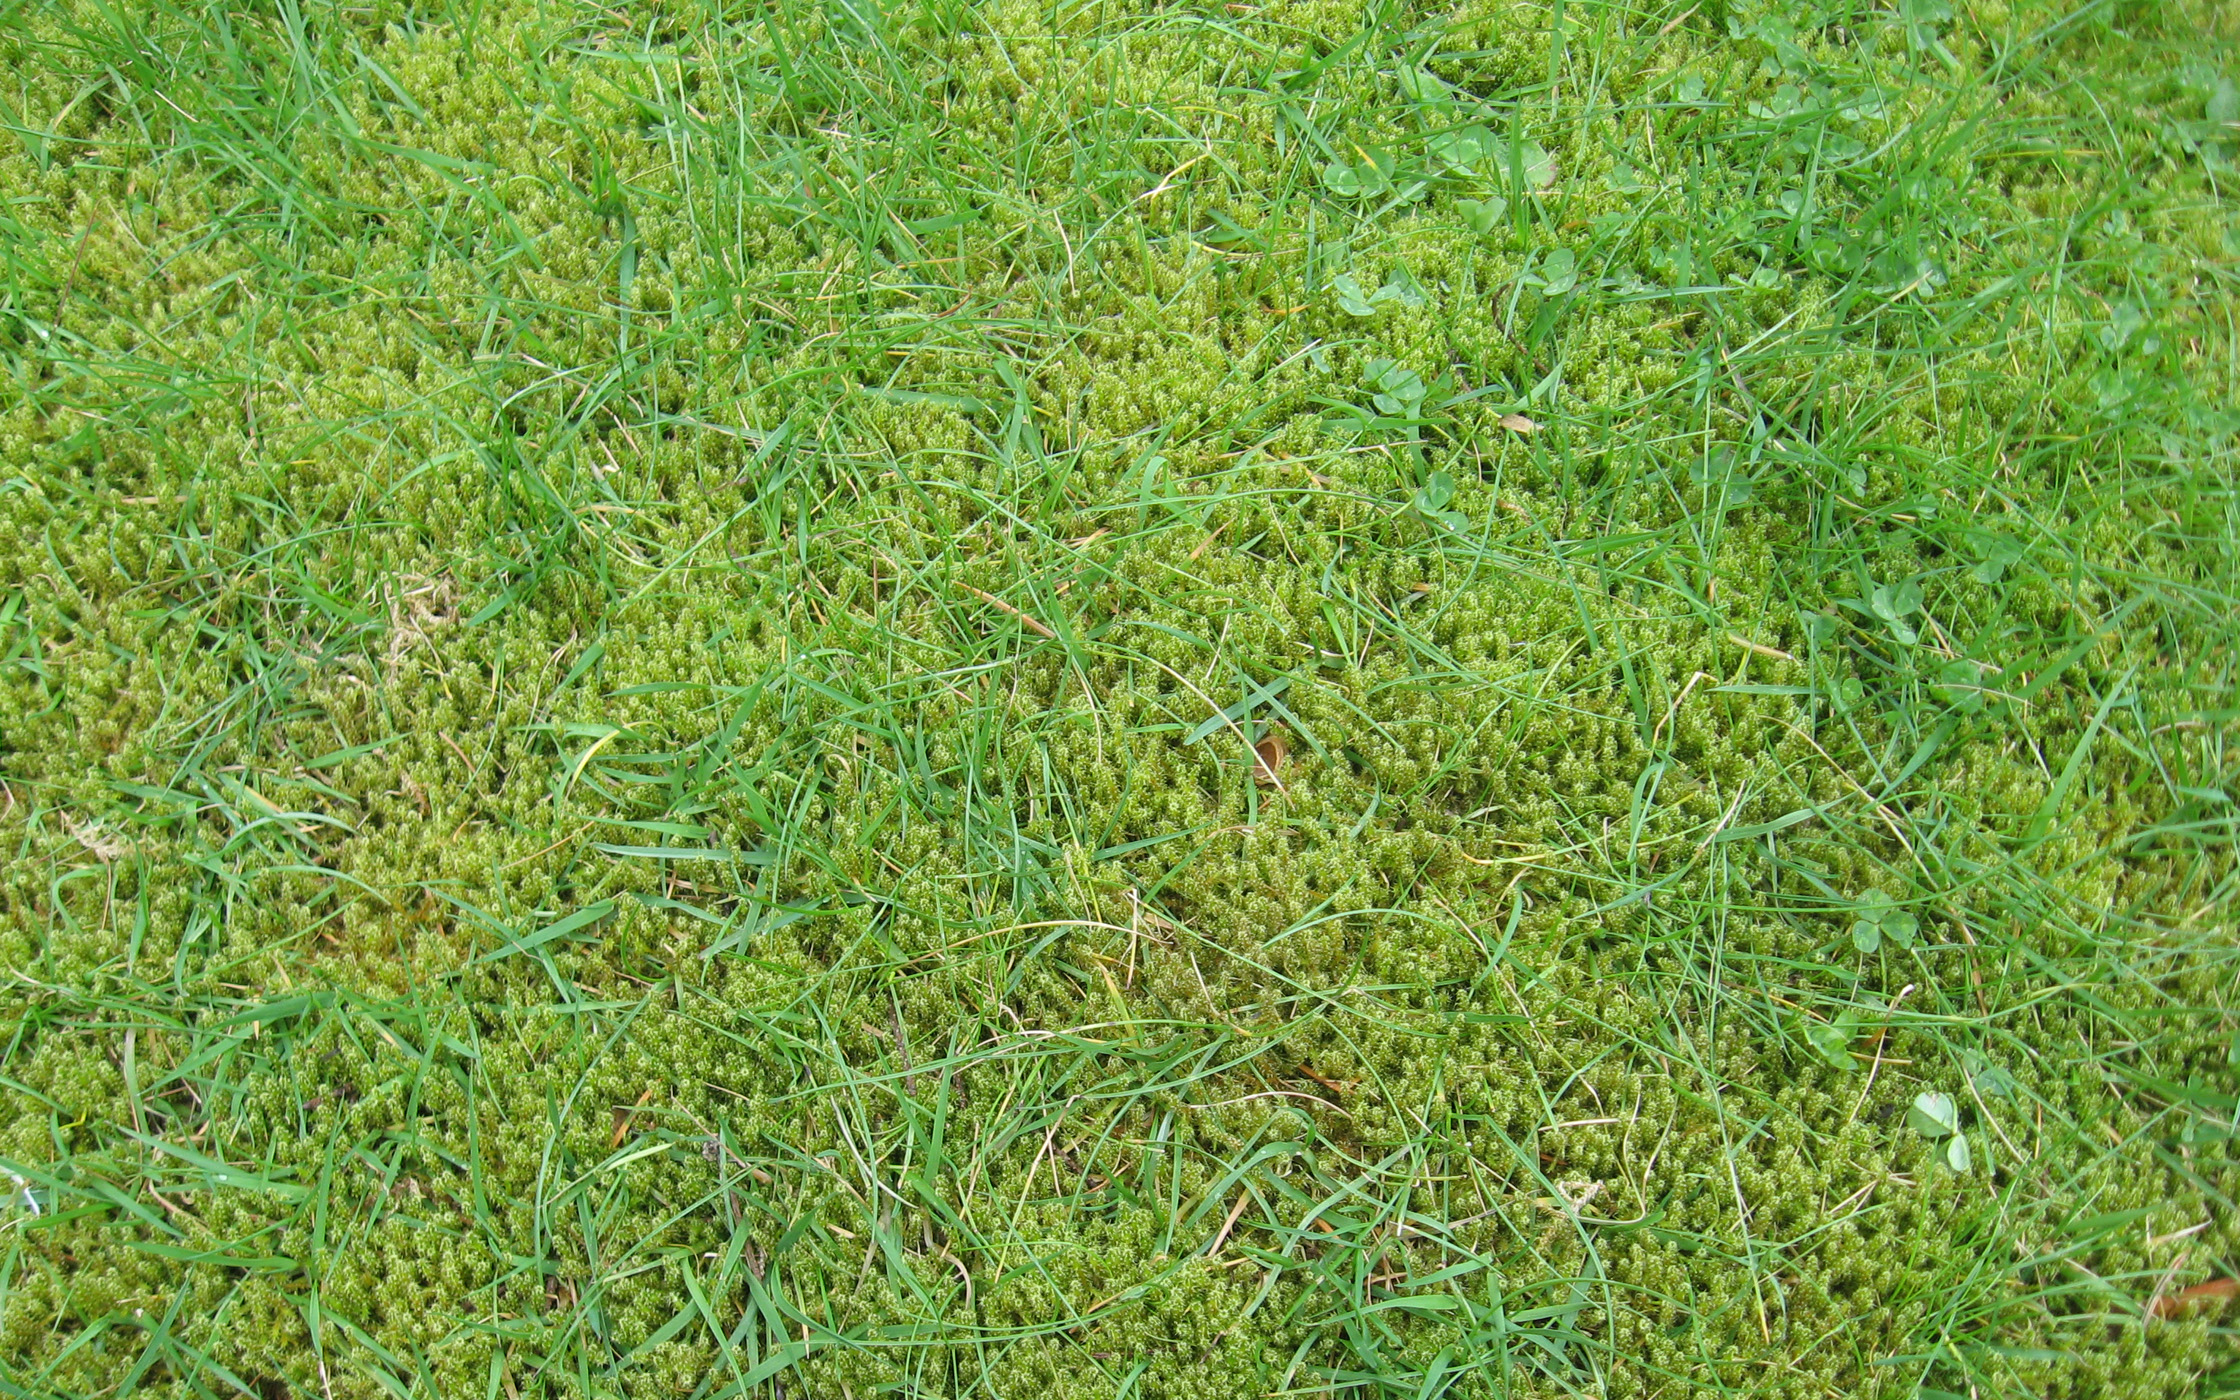 Lawn moss is very common.